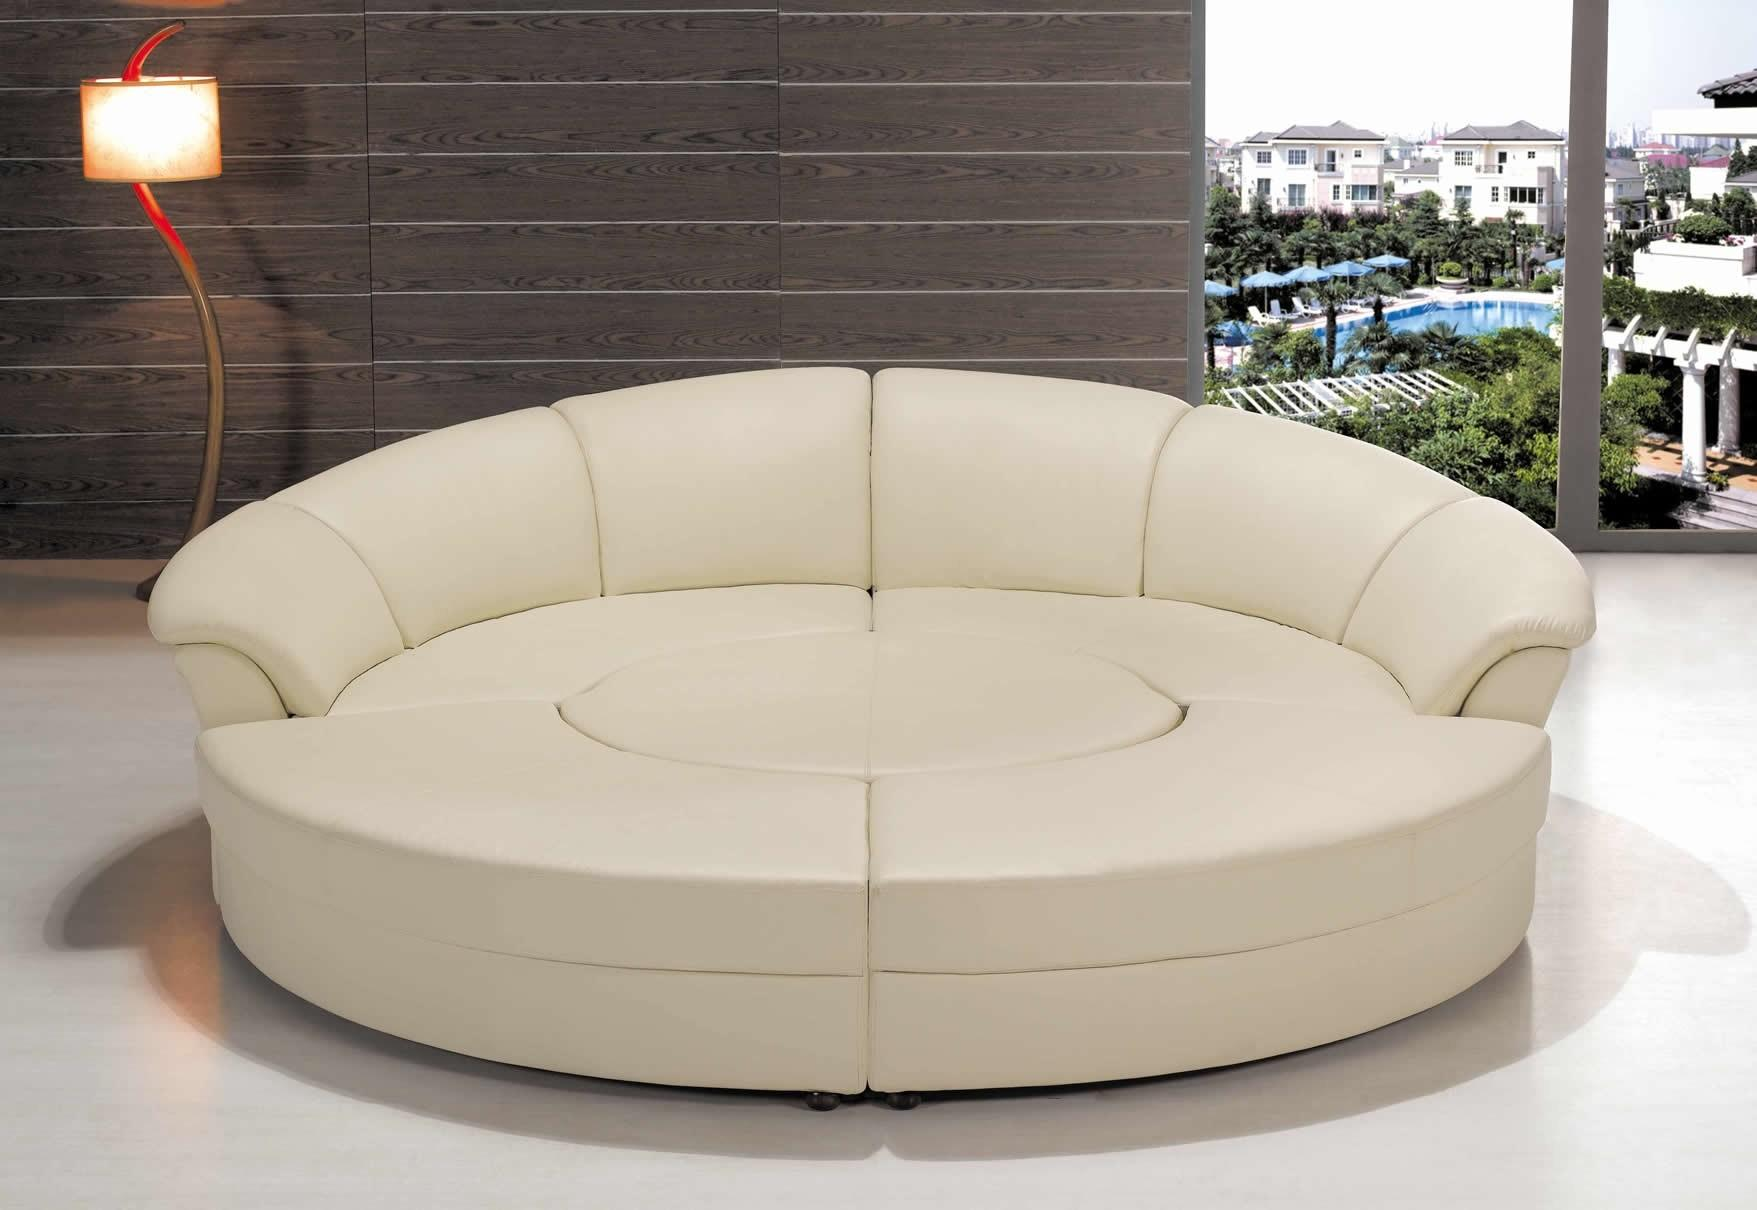 Round Sofa Beds Circular Bed Loccie Better Homes